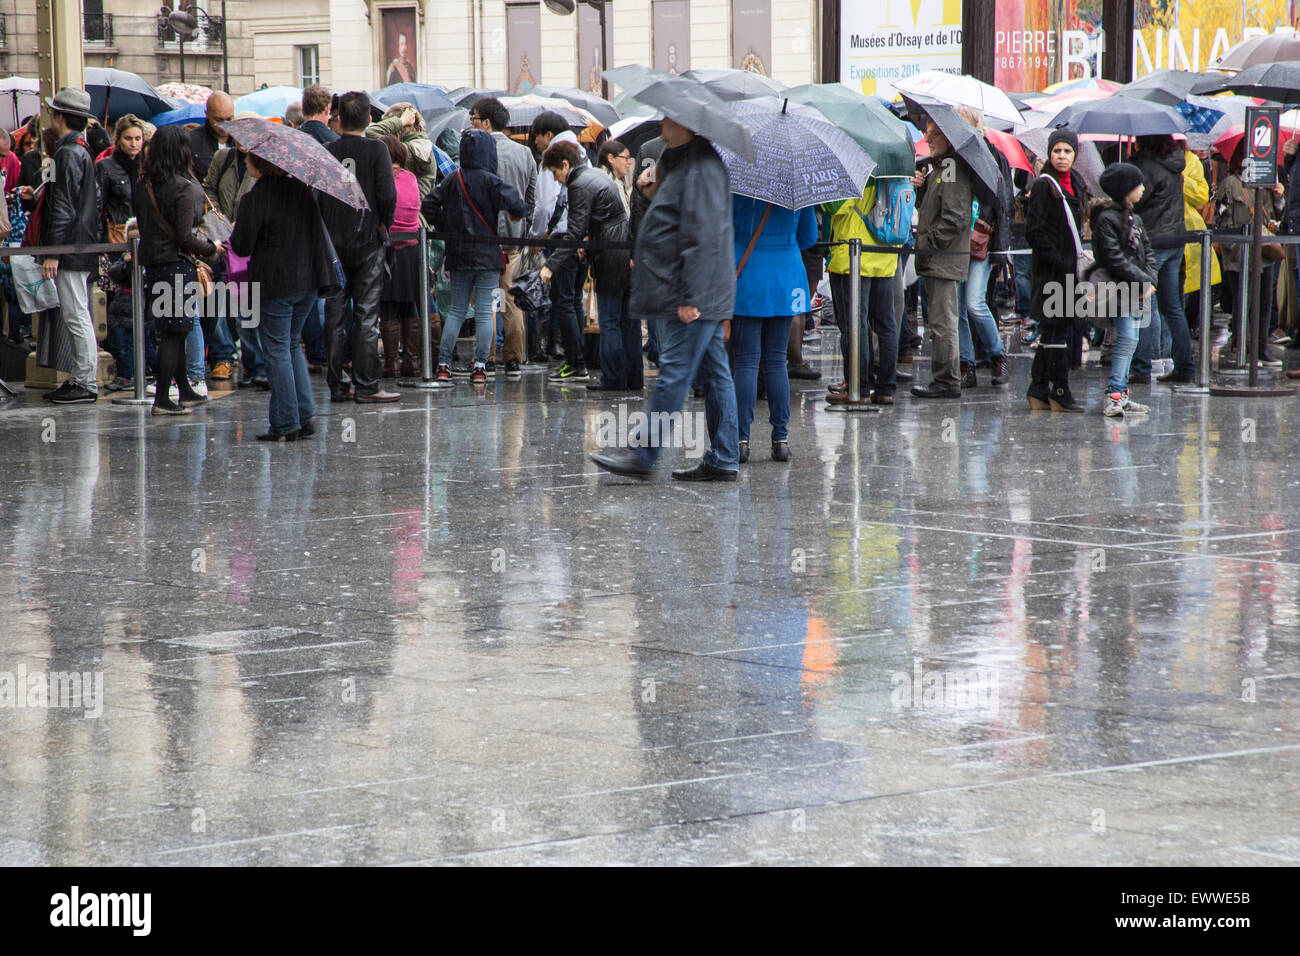 Queuing in the rain Musees d'Orsay Paris - Stock Image